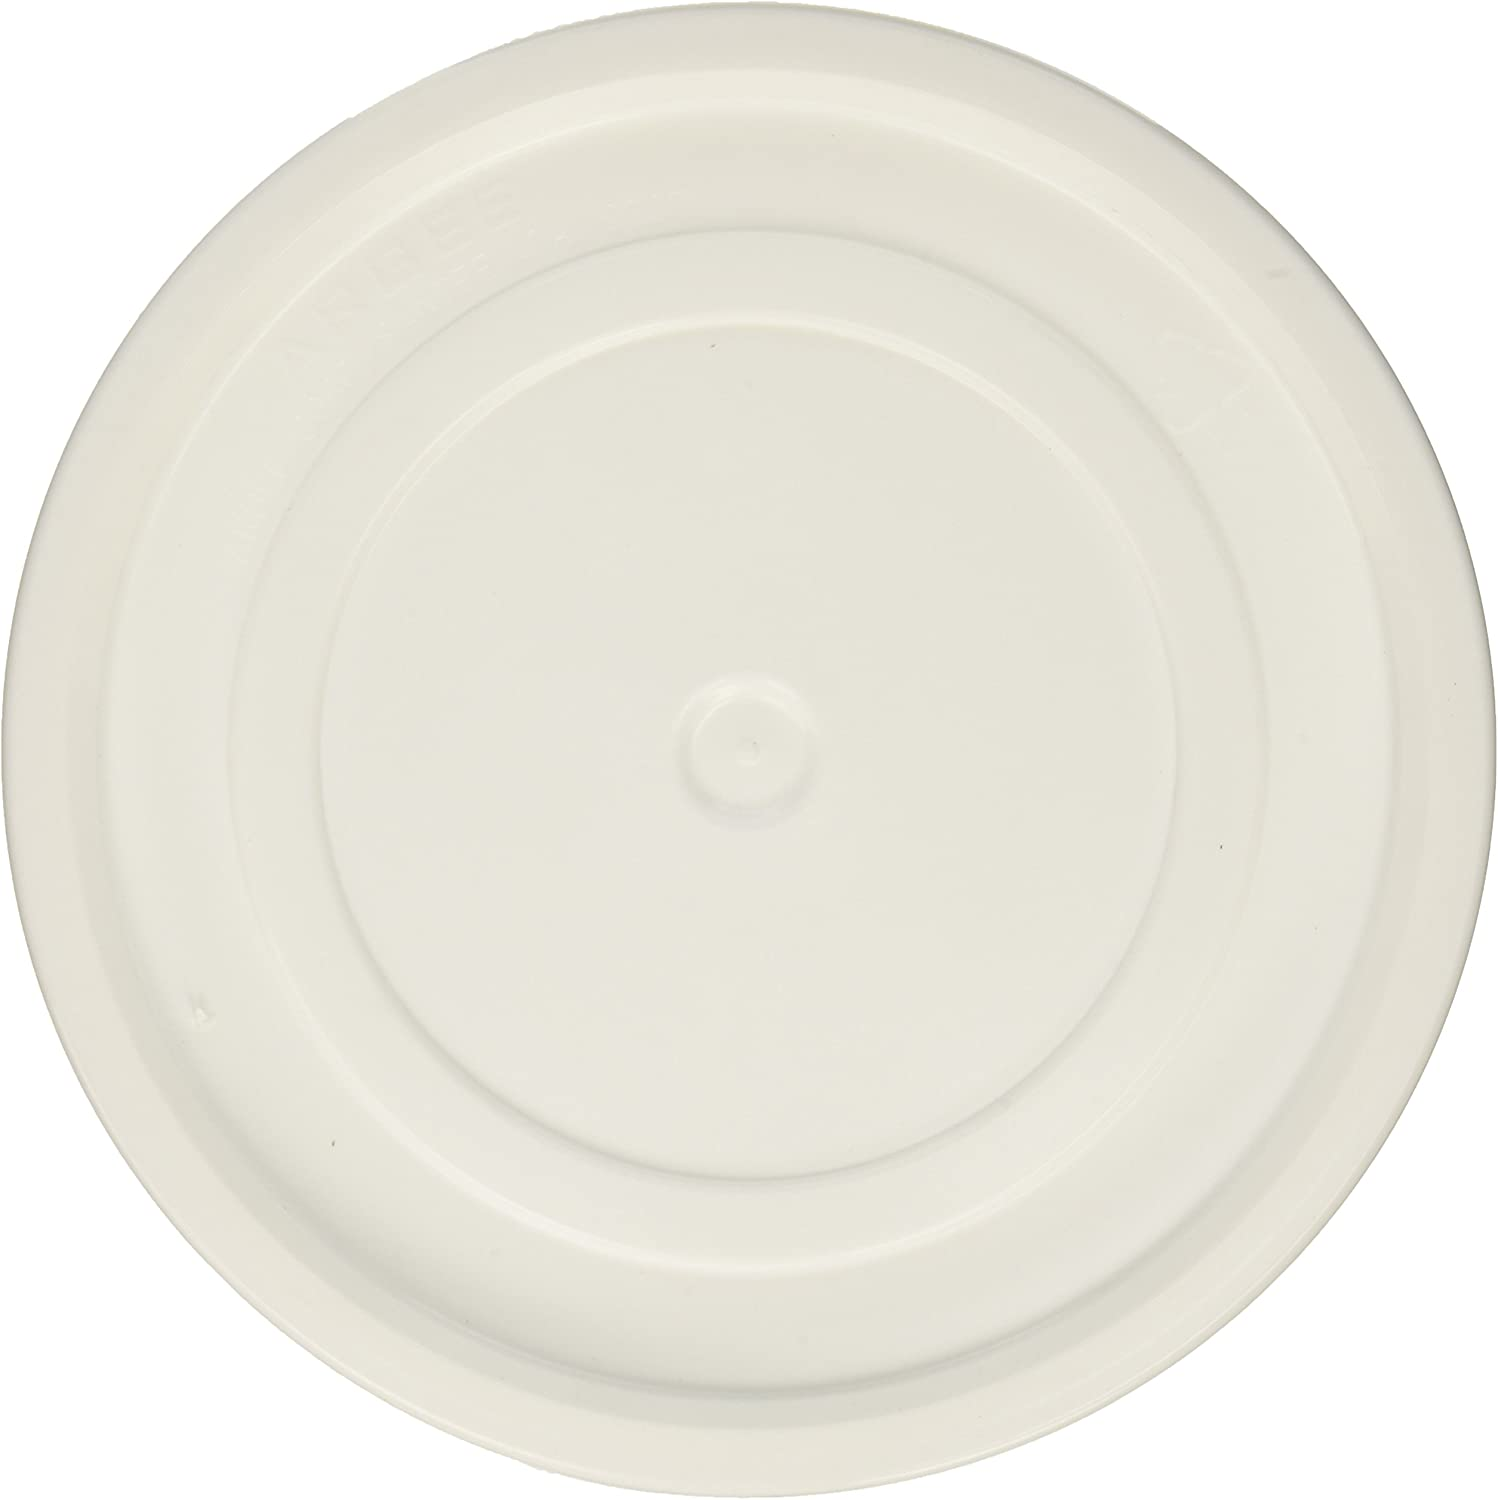 Bon Tool 84-232 Directly managed store Lid For 5 Gallon White - Plastic Bucket Max 58% OFF